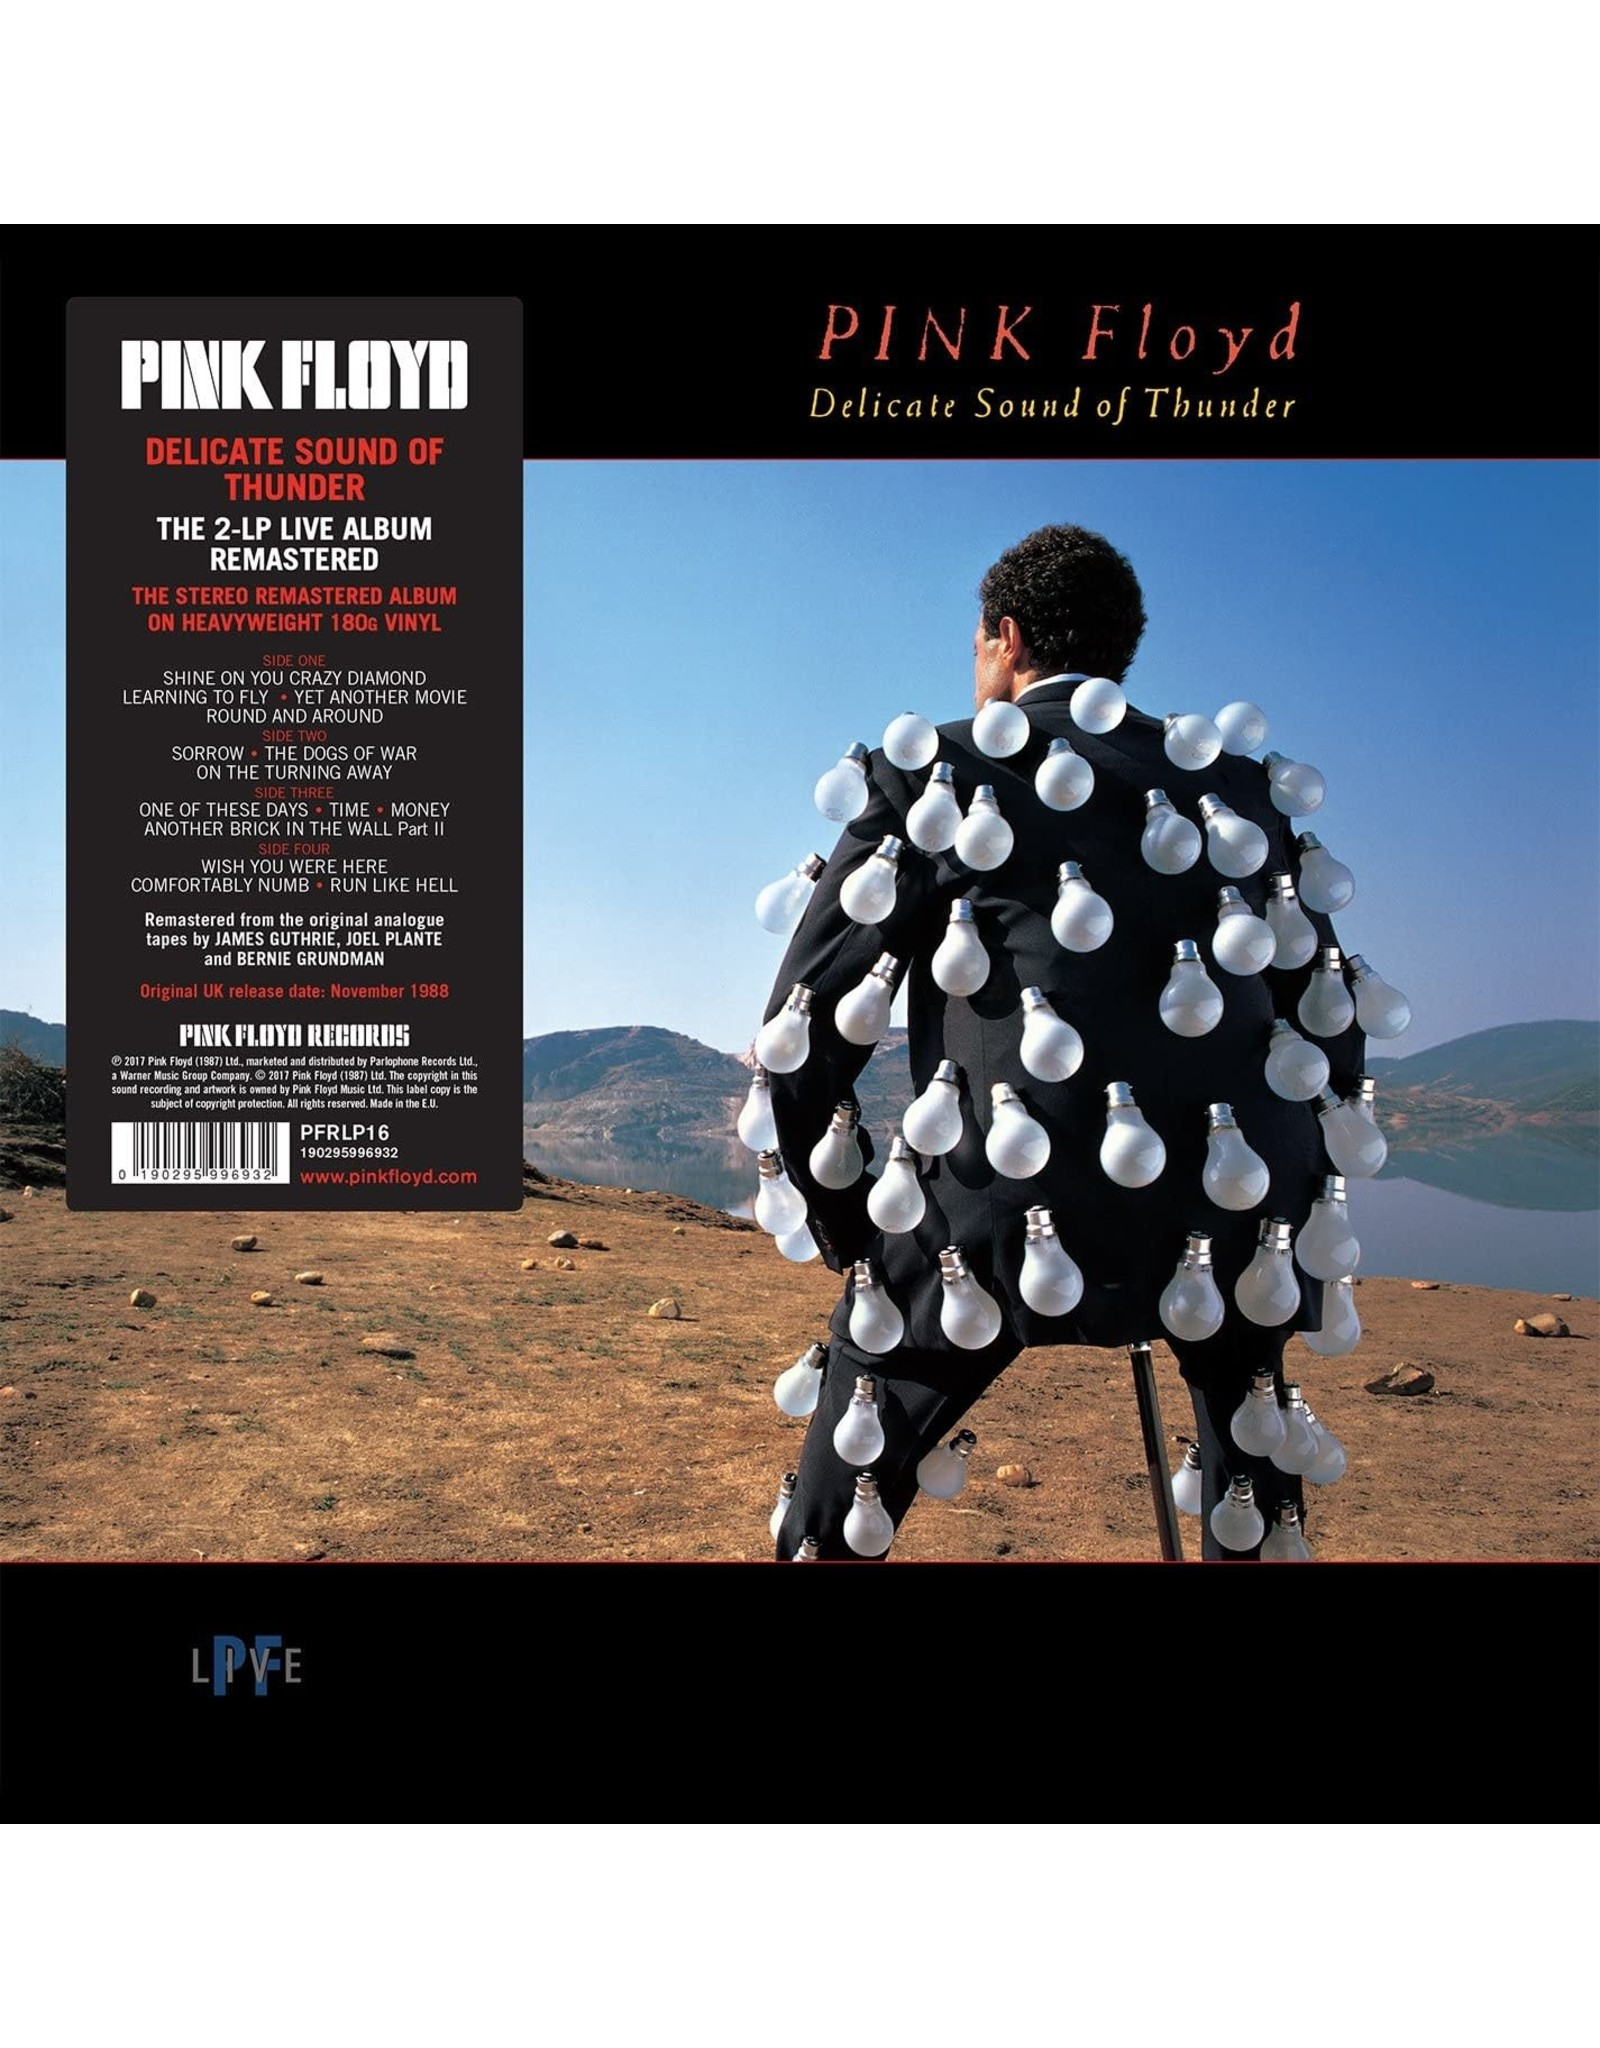 Pink Floyd - Delicate Sound of Thunder LP